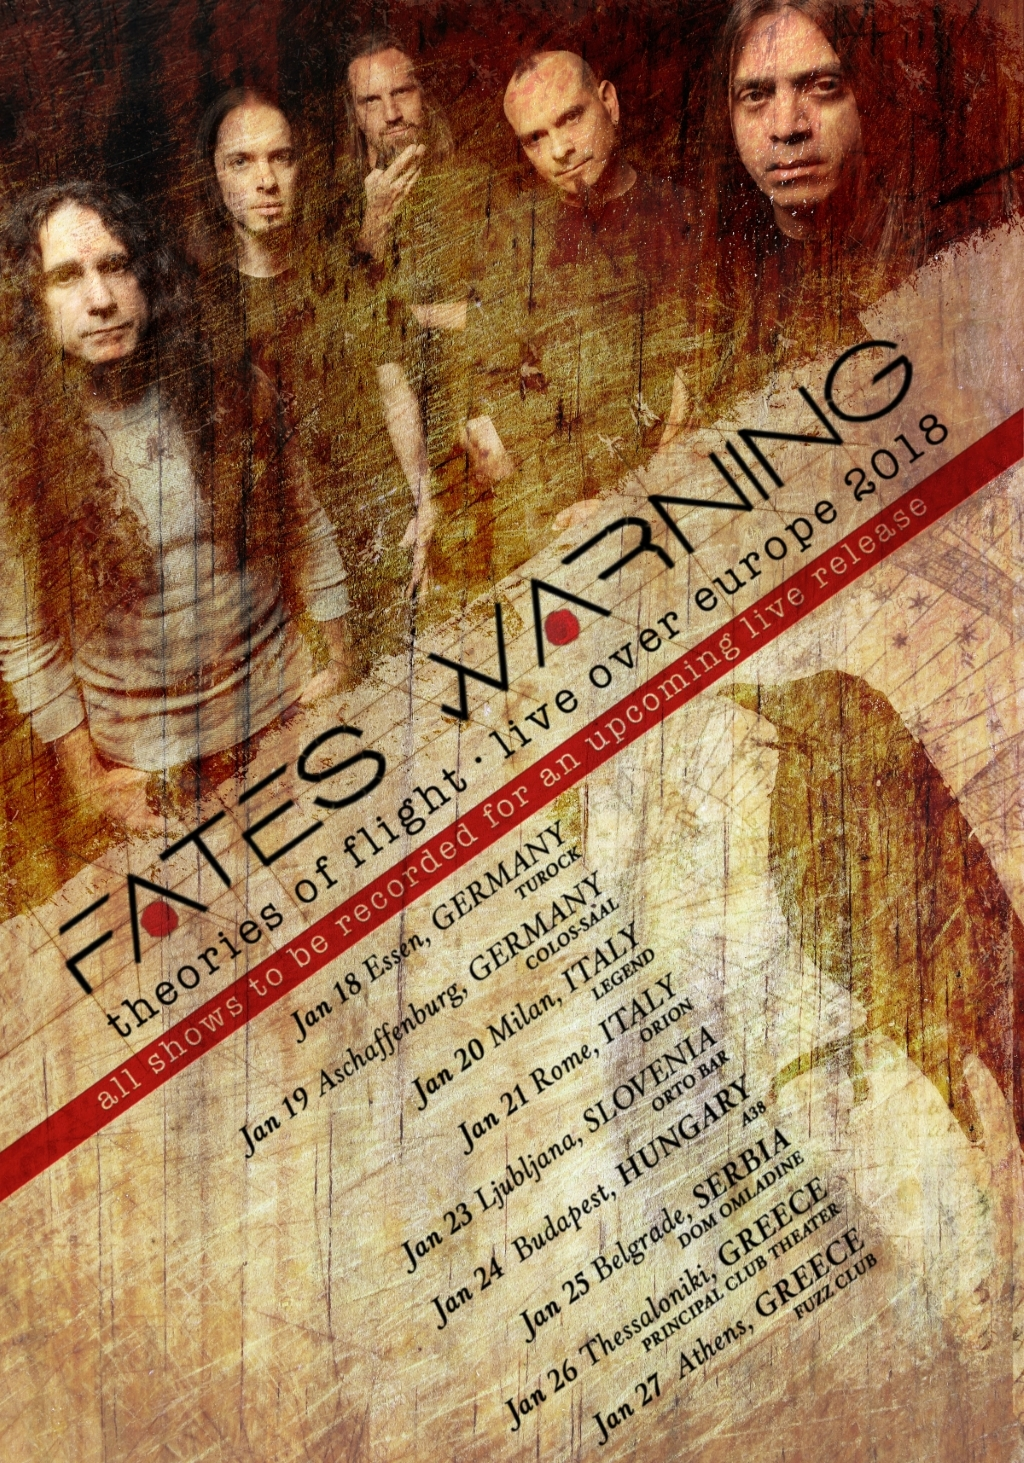 Fates Warning + Methodica @ Orion Live Club, Roma – 21 gennaio 2018